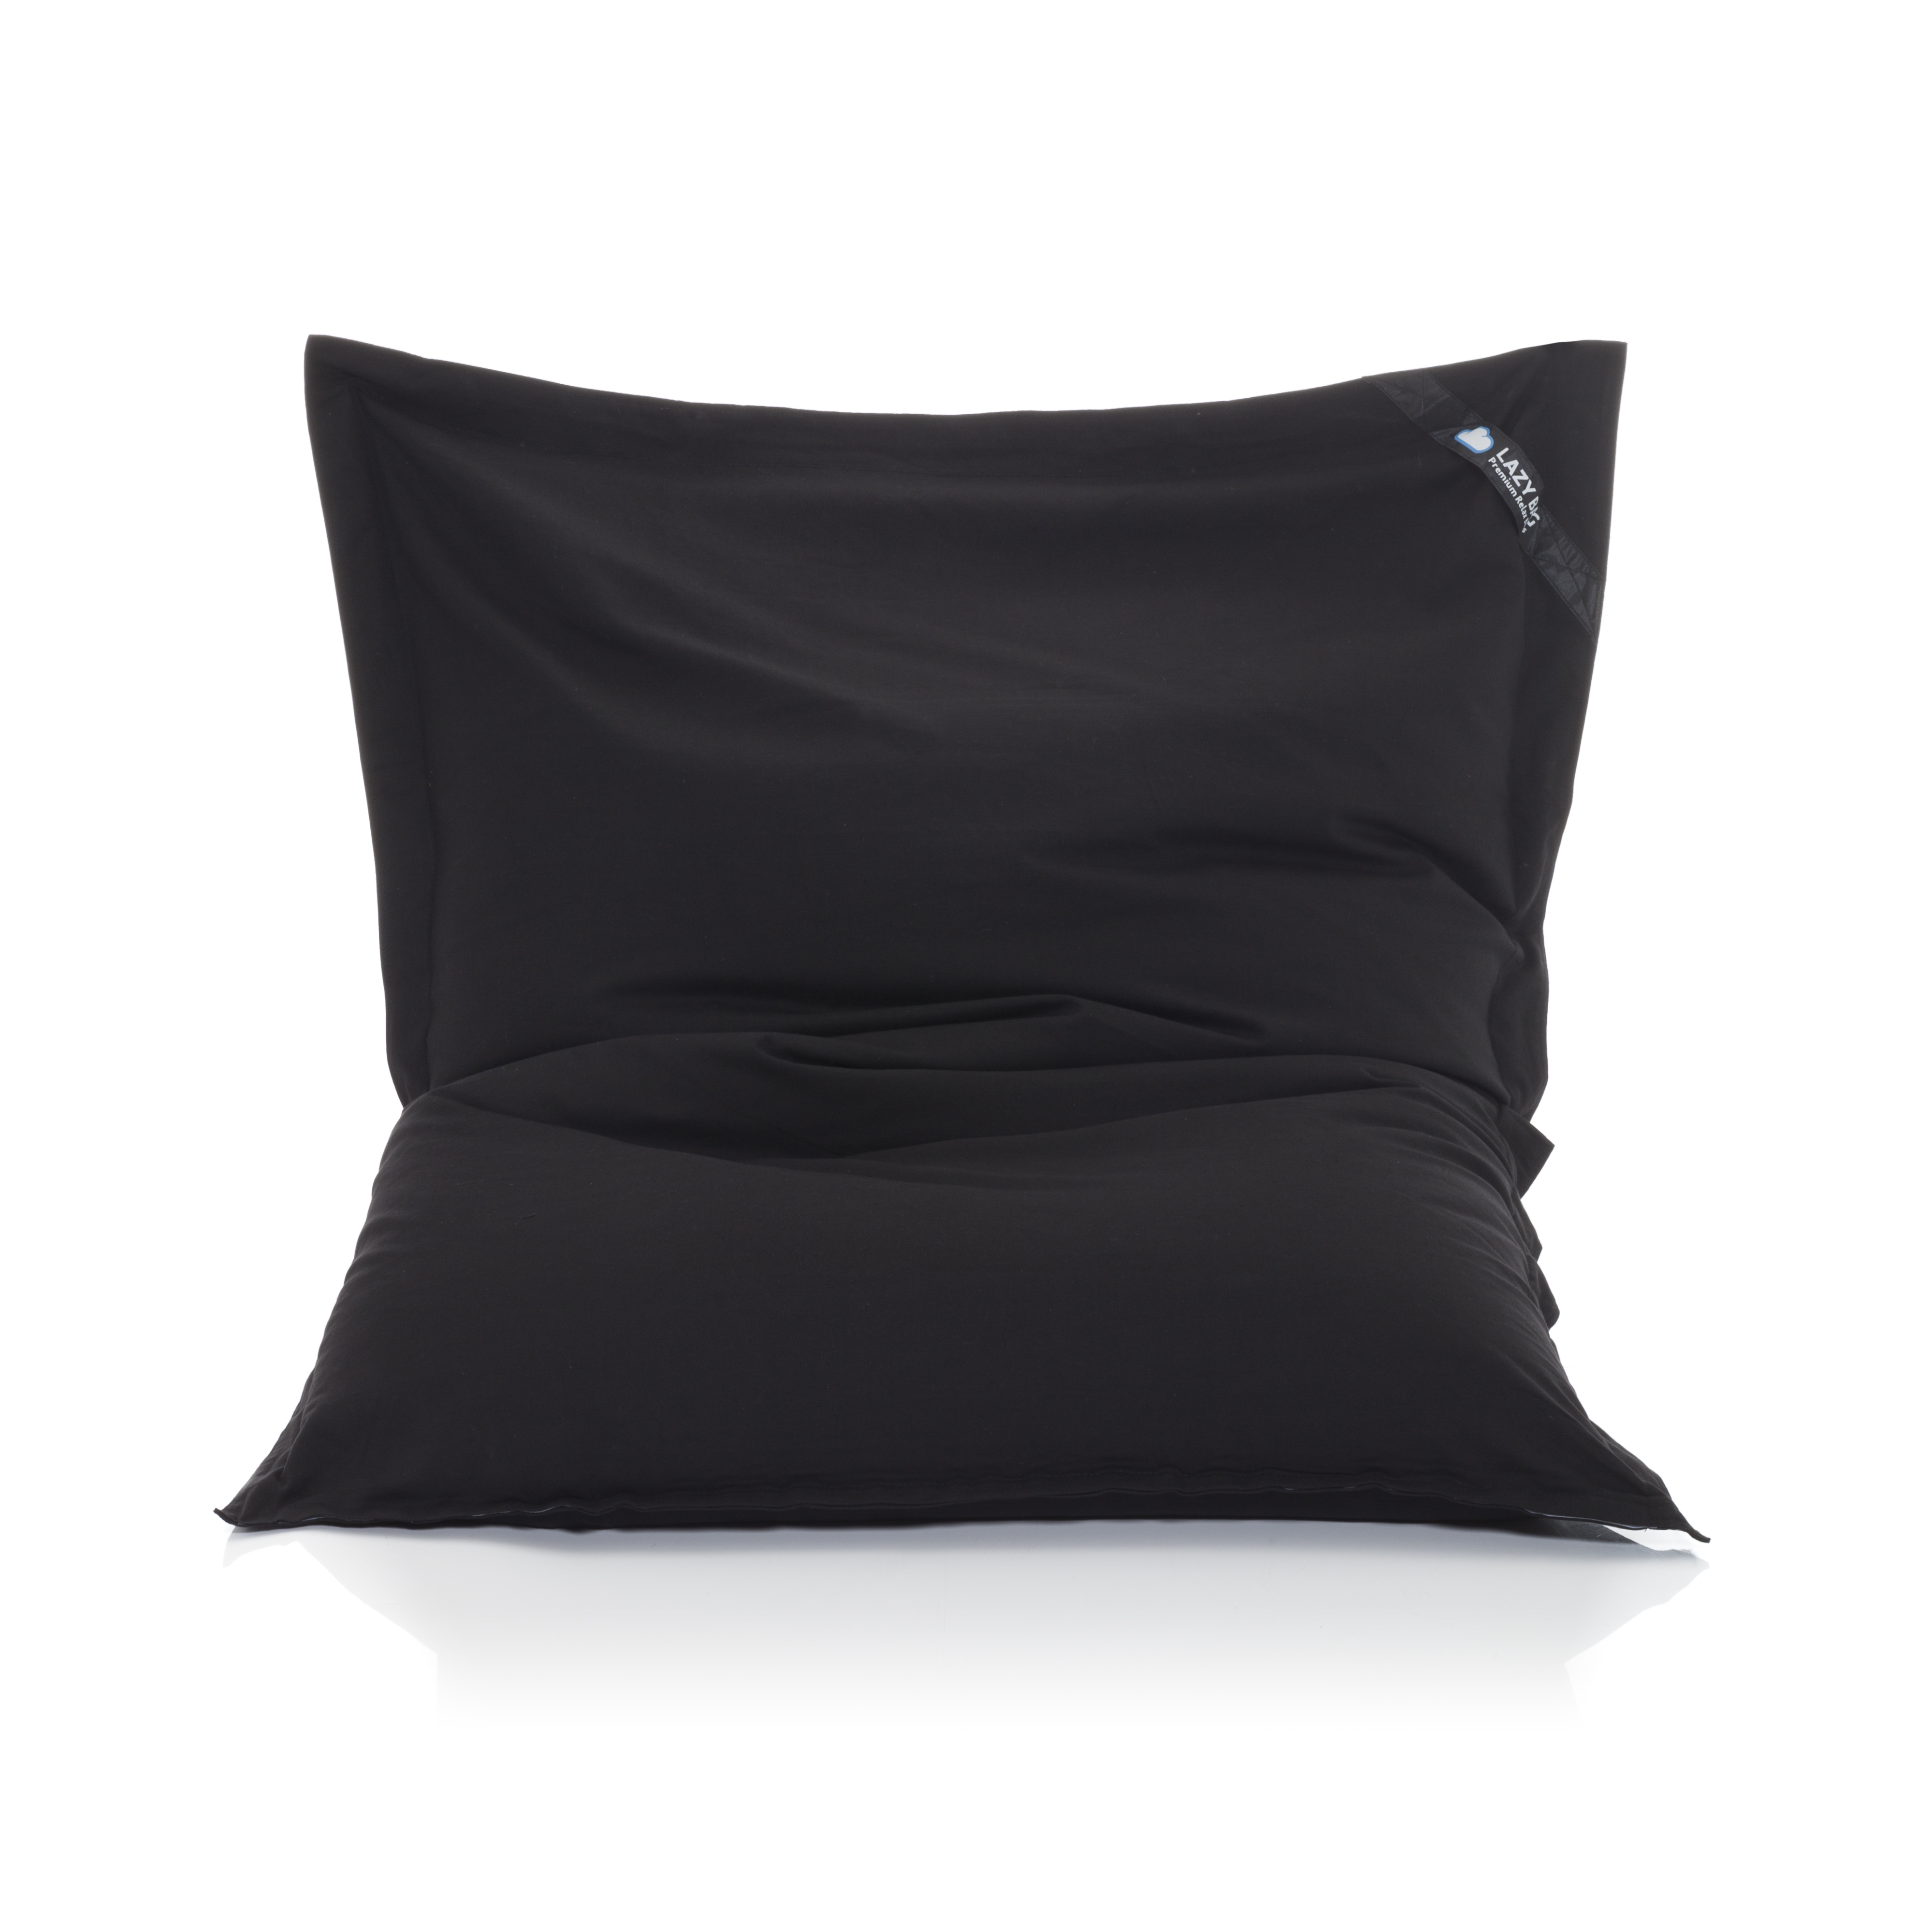 lazy bag xxl sitzsack aus baumwolle sitzkissen in 12 farben. Black Bedroom Furniture Sets. Home Design Ideas